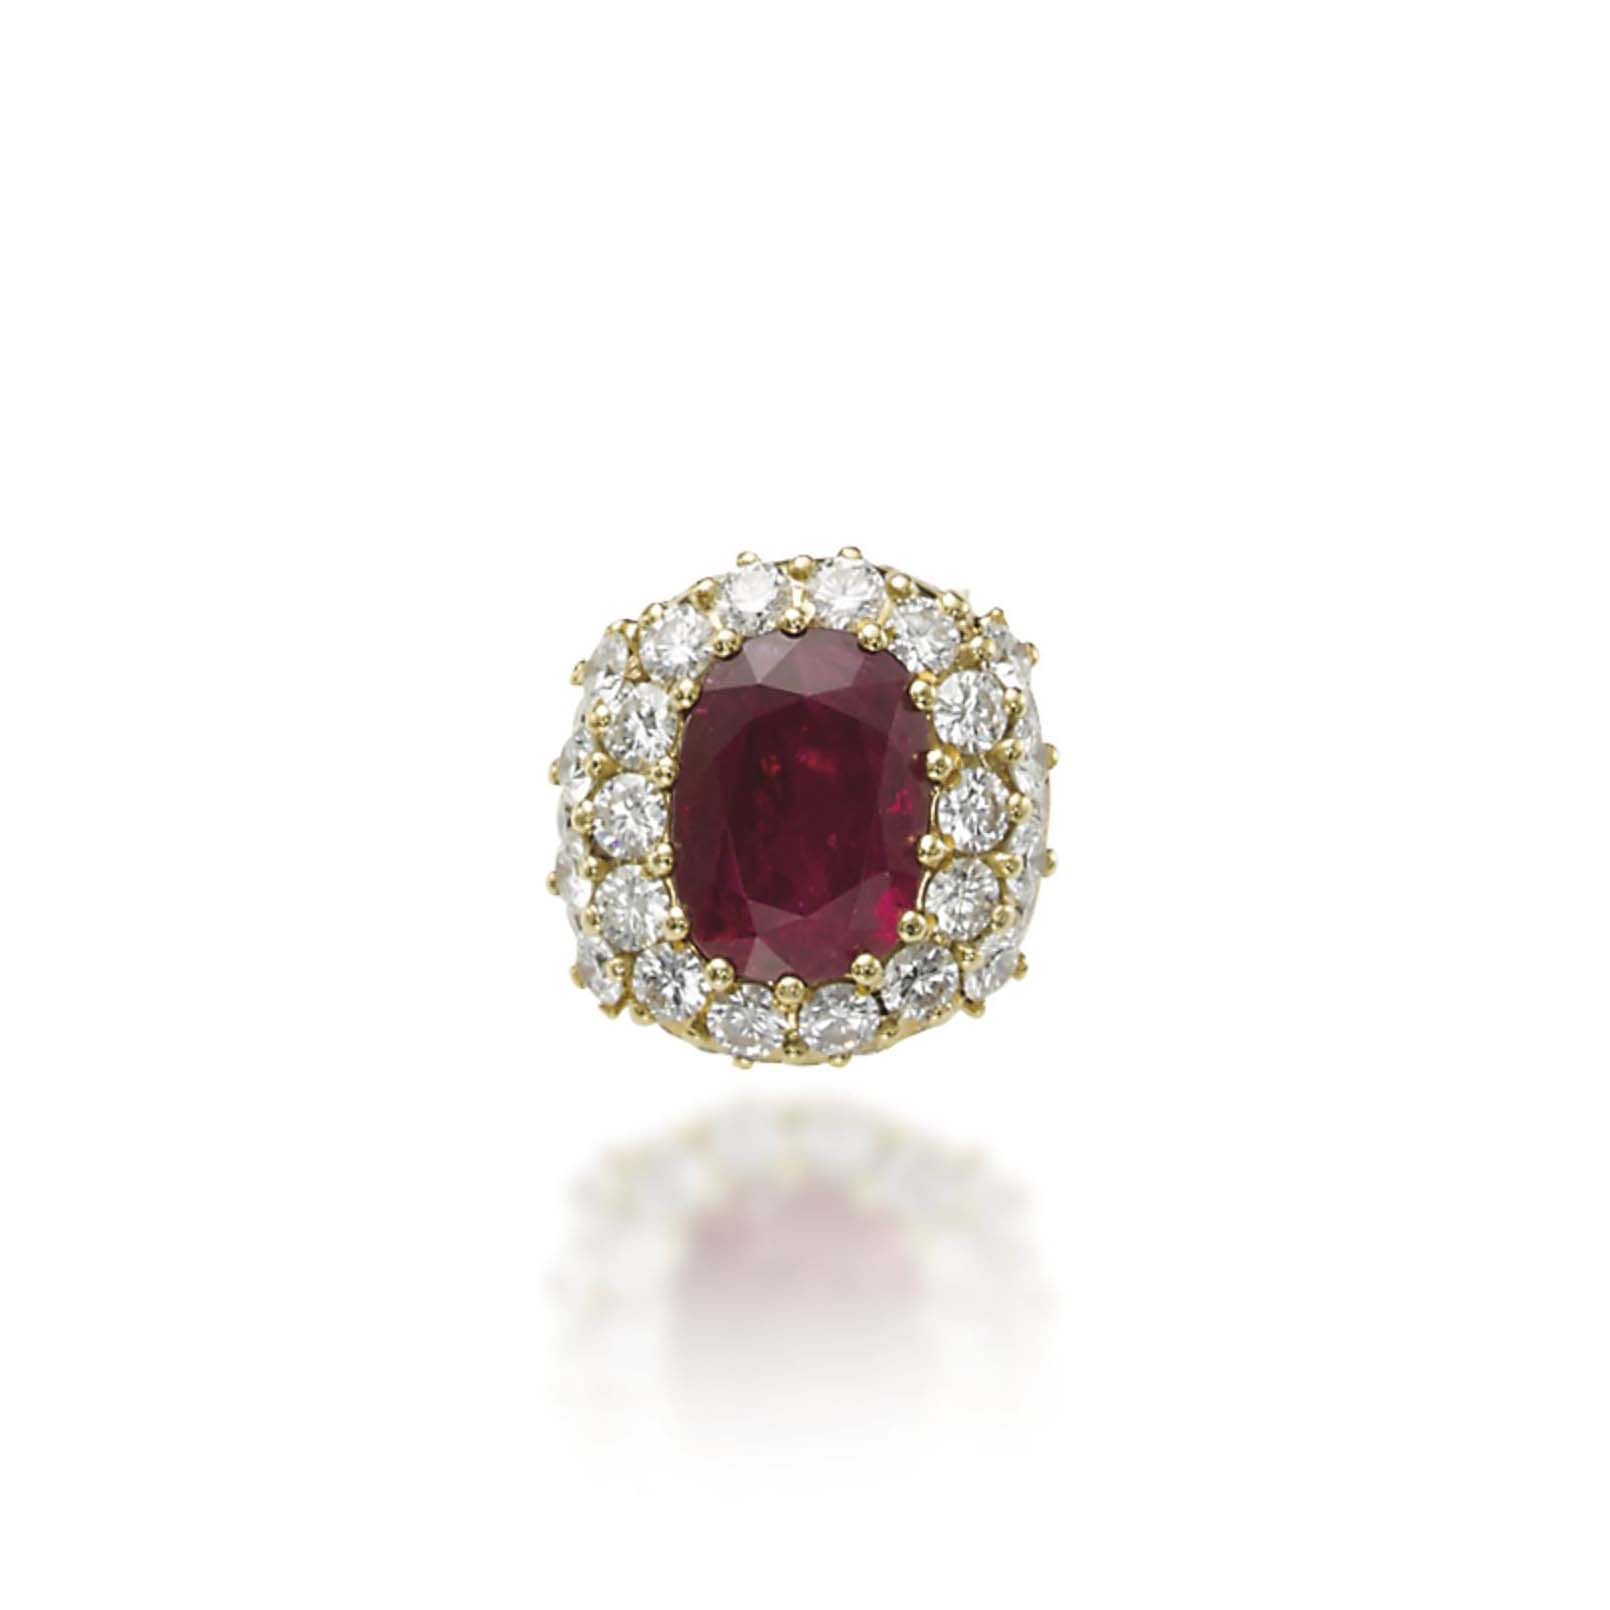 A RUBY AND DIAMOND RING, BY MORONI